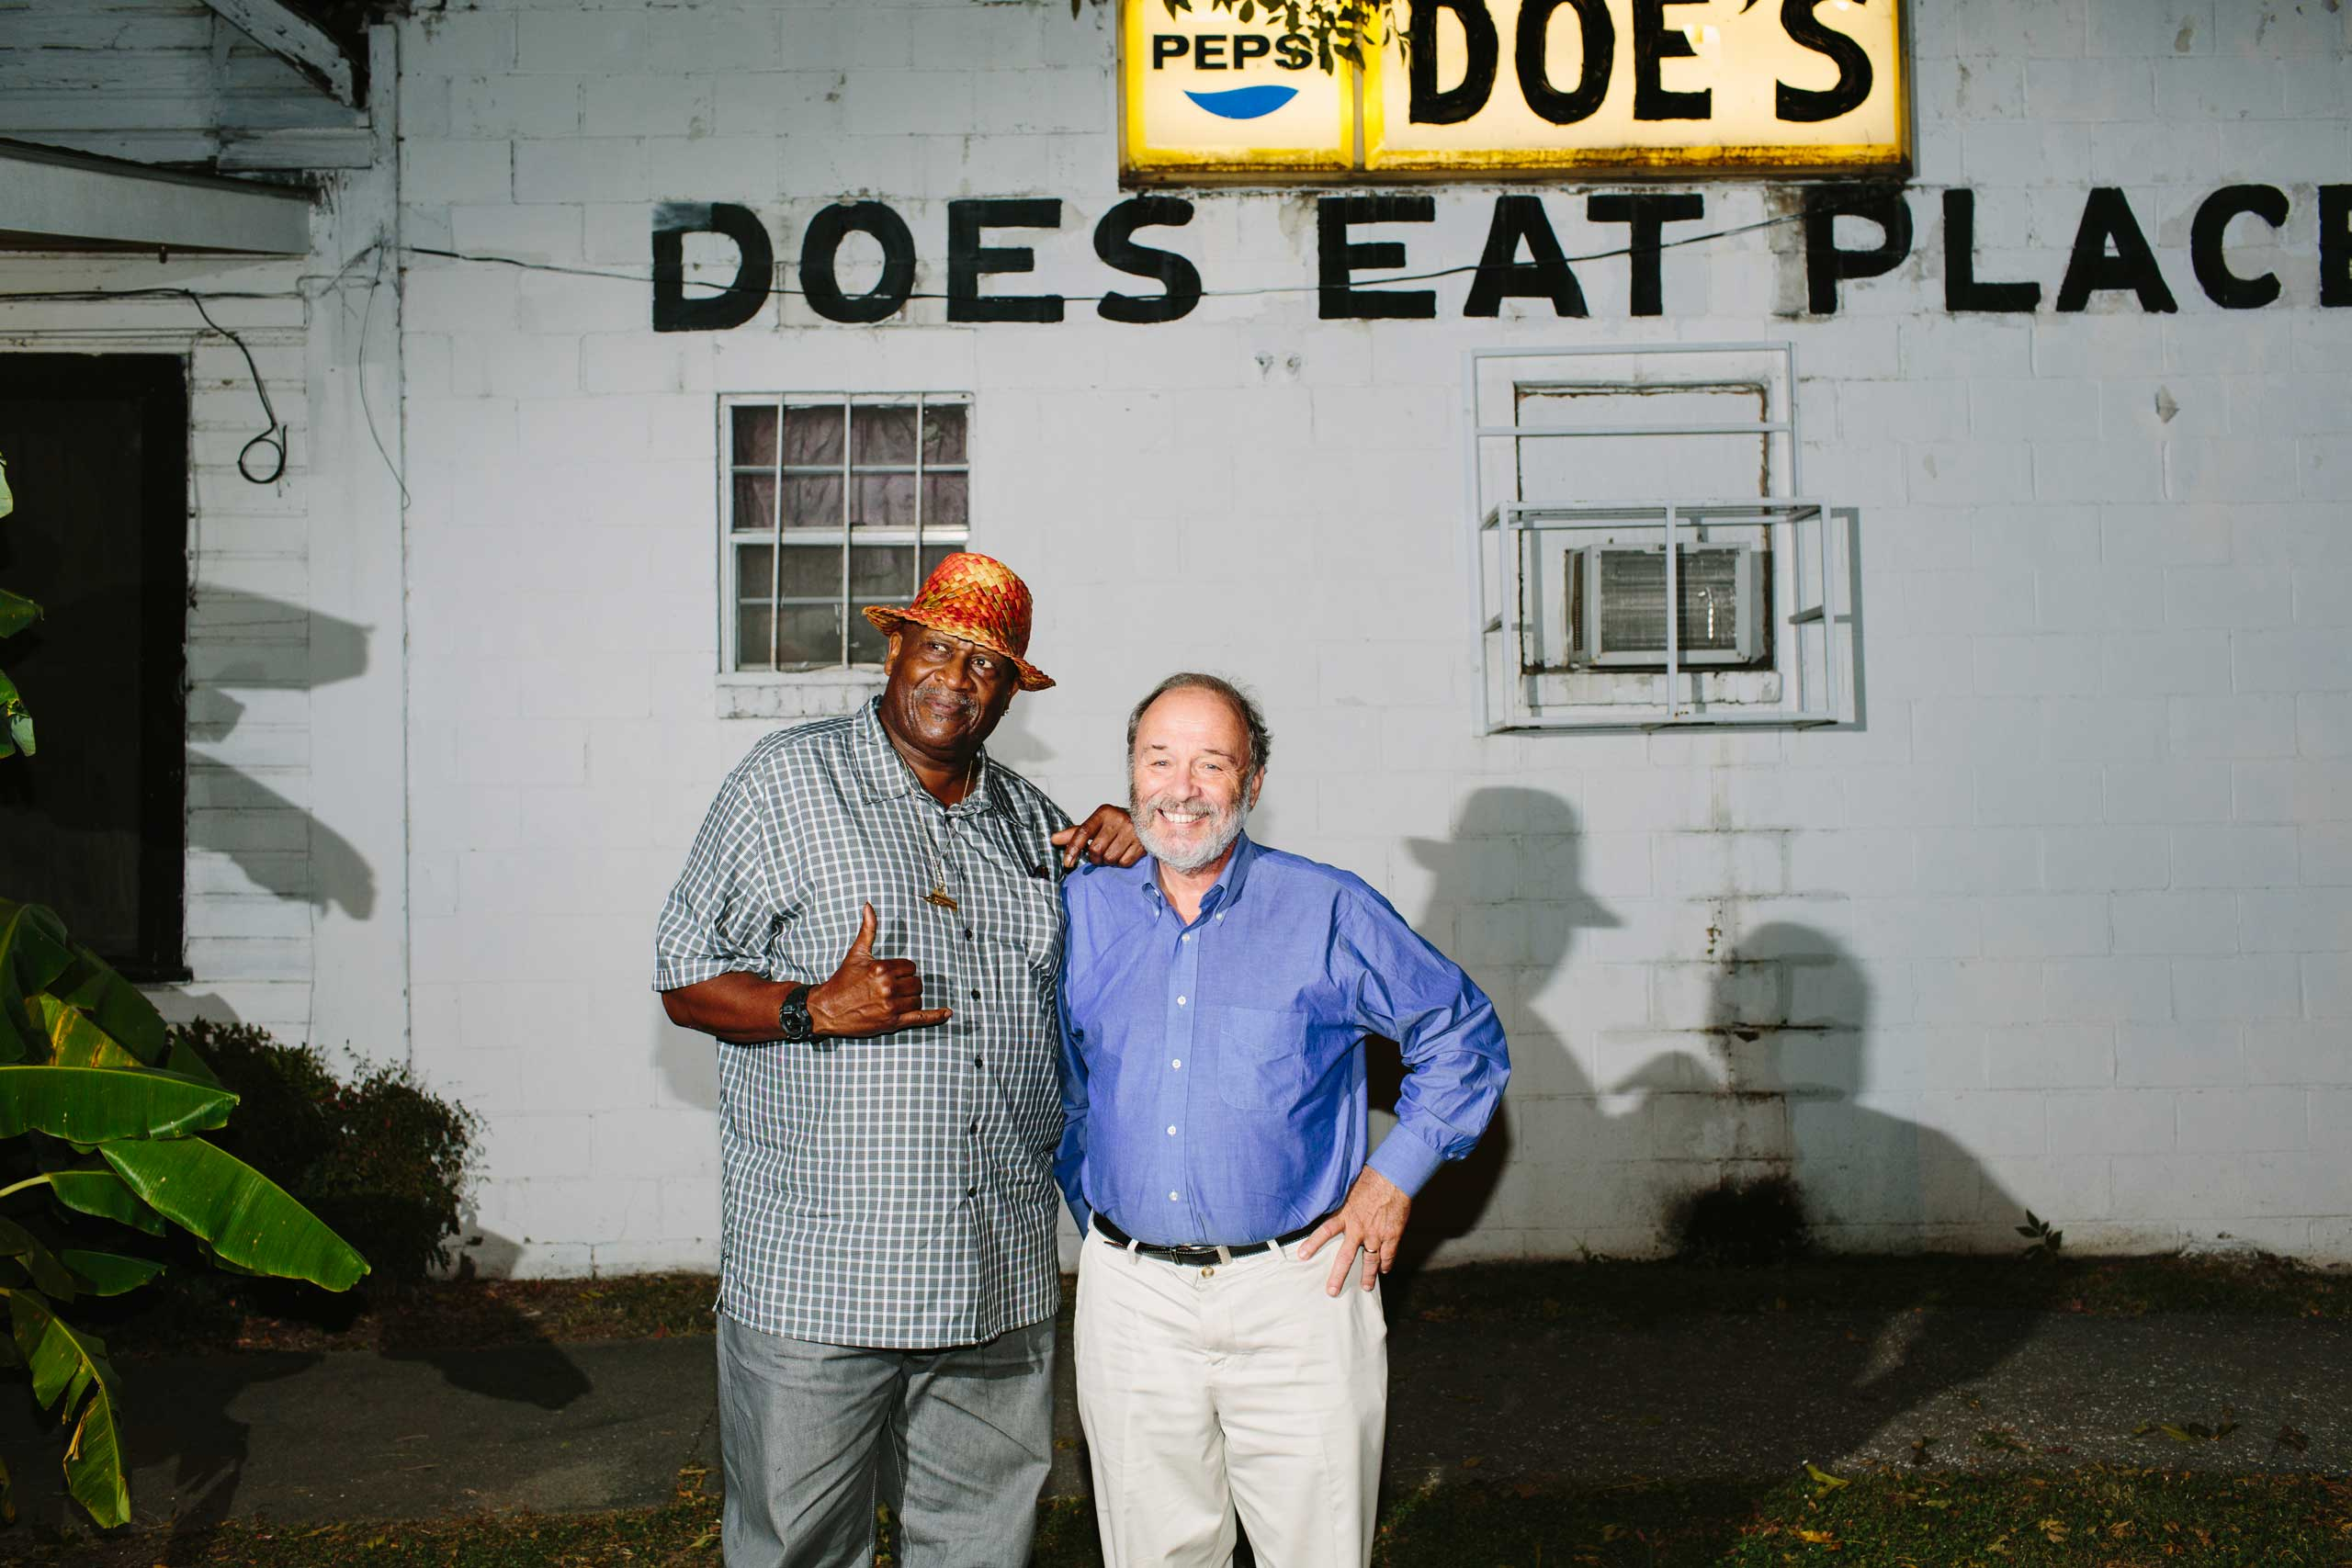 Musician Taj Mahal, left, and Joe Klein, right, at Doe's Eat Place in Greenville, Miss. on Sept. 30, 2014.